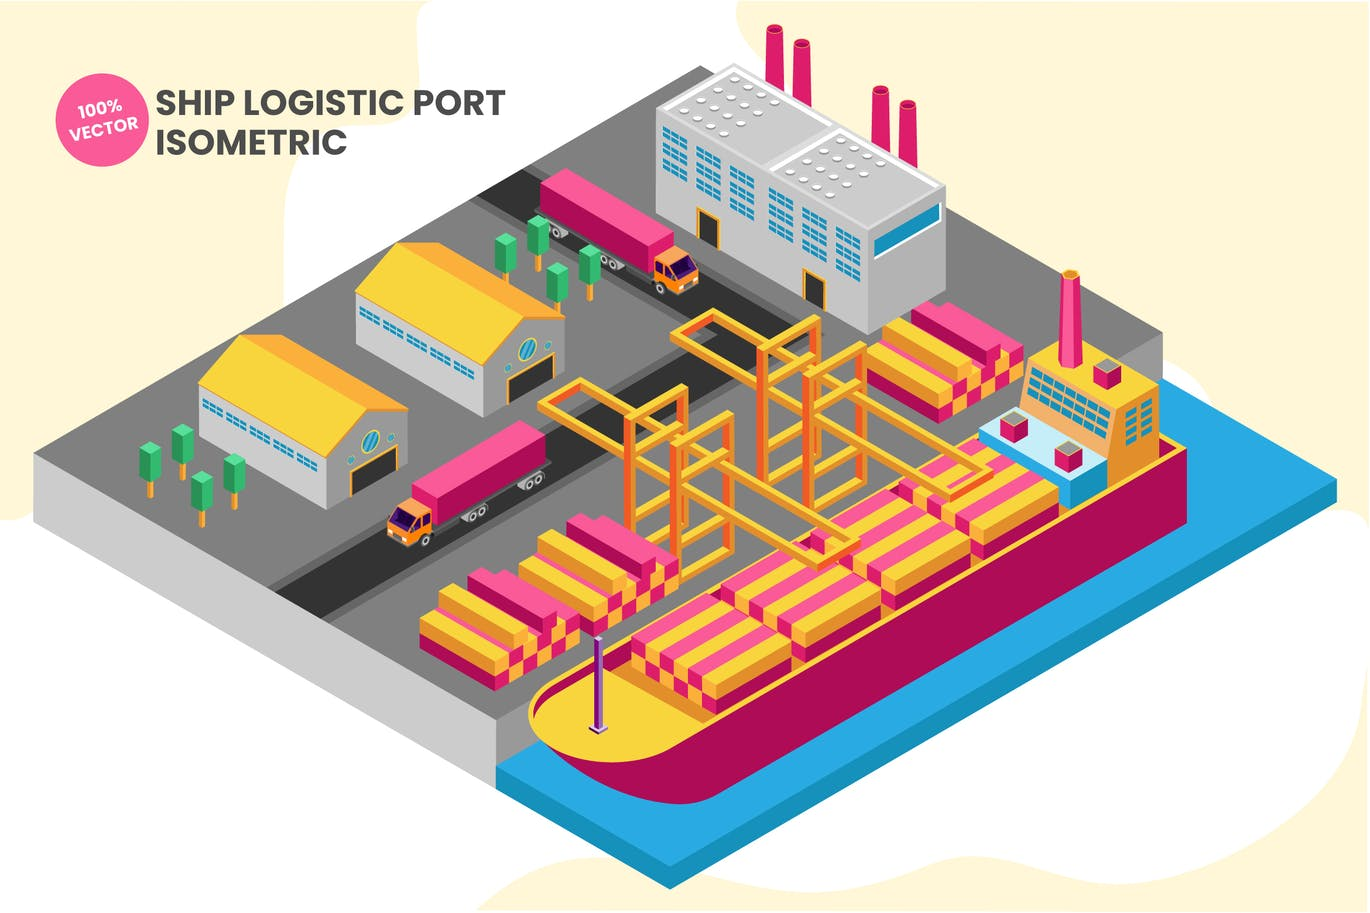 Isometric Ship Logistic Port Vector Illustration